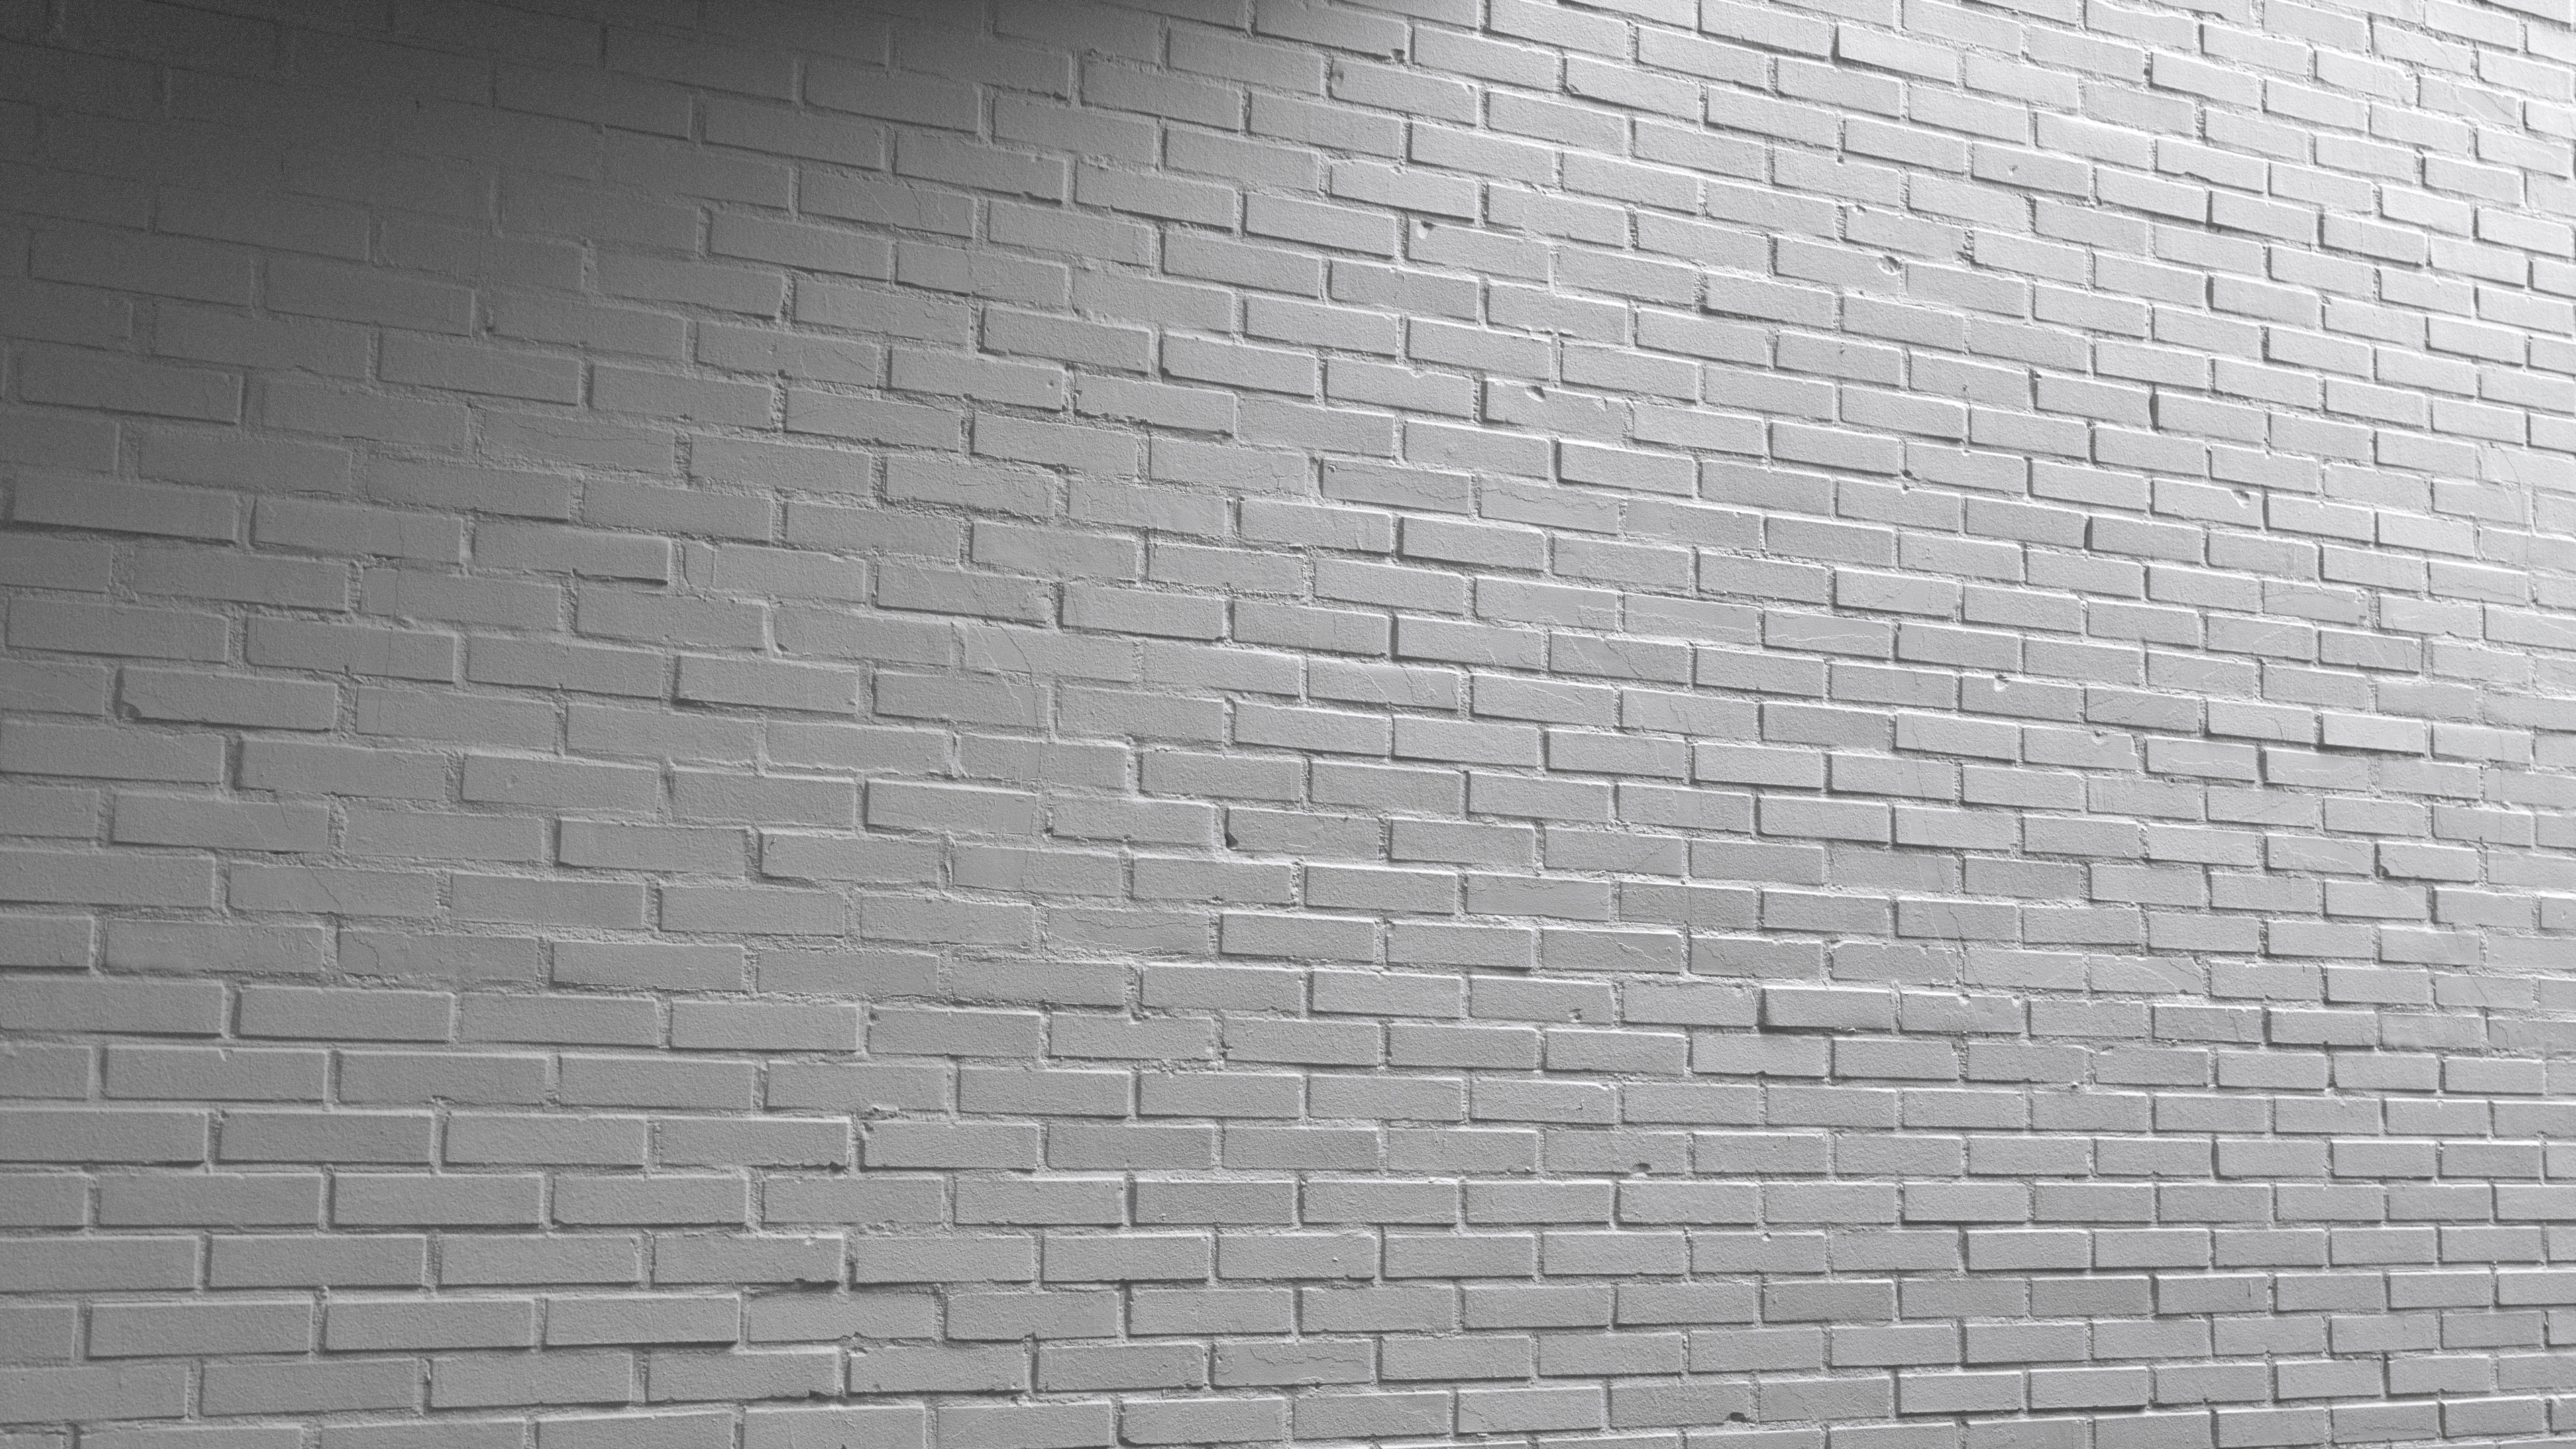 3d Scanned Painted Brick Wall 3x3 Meters